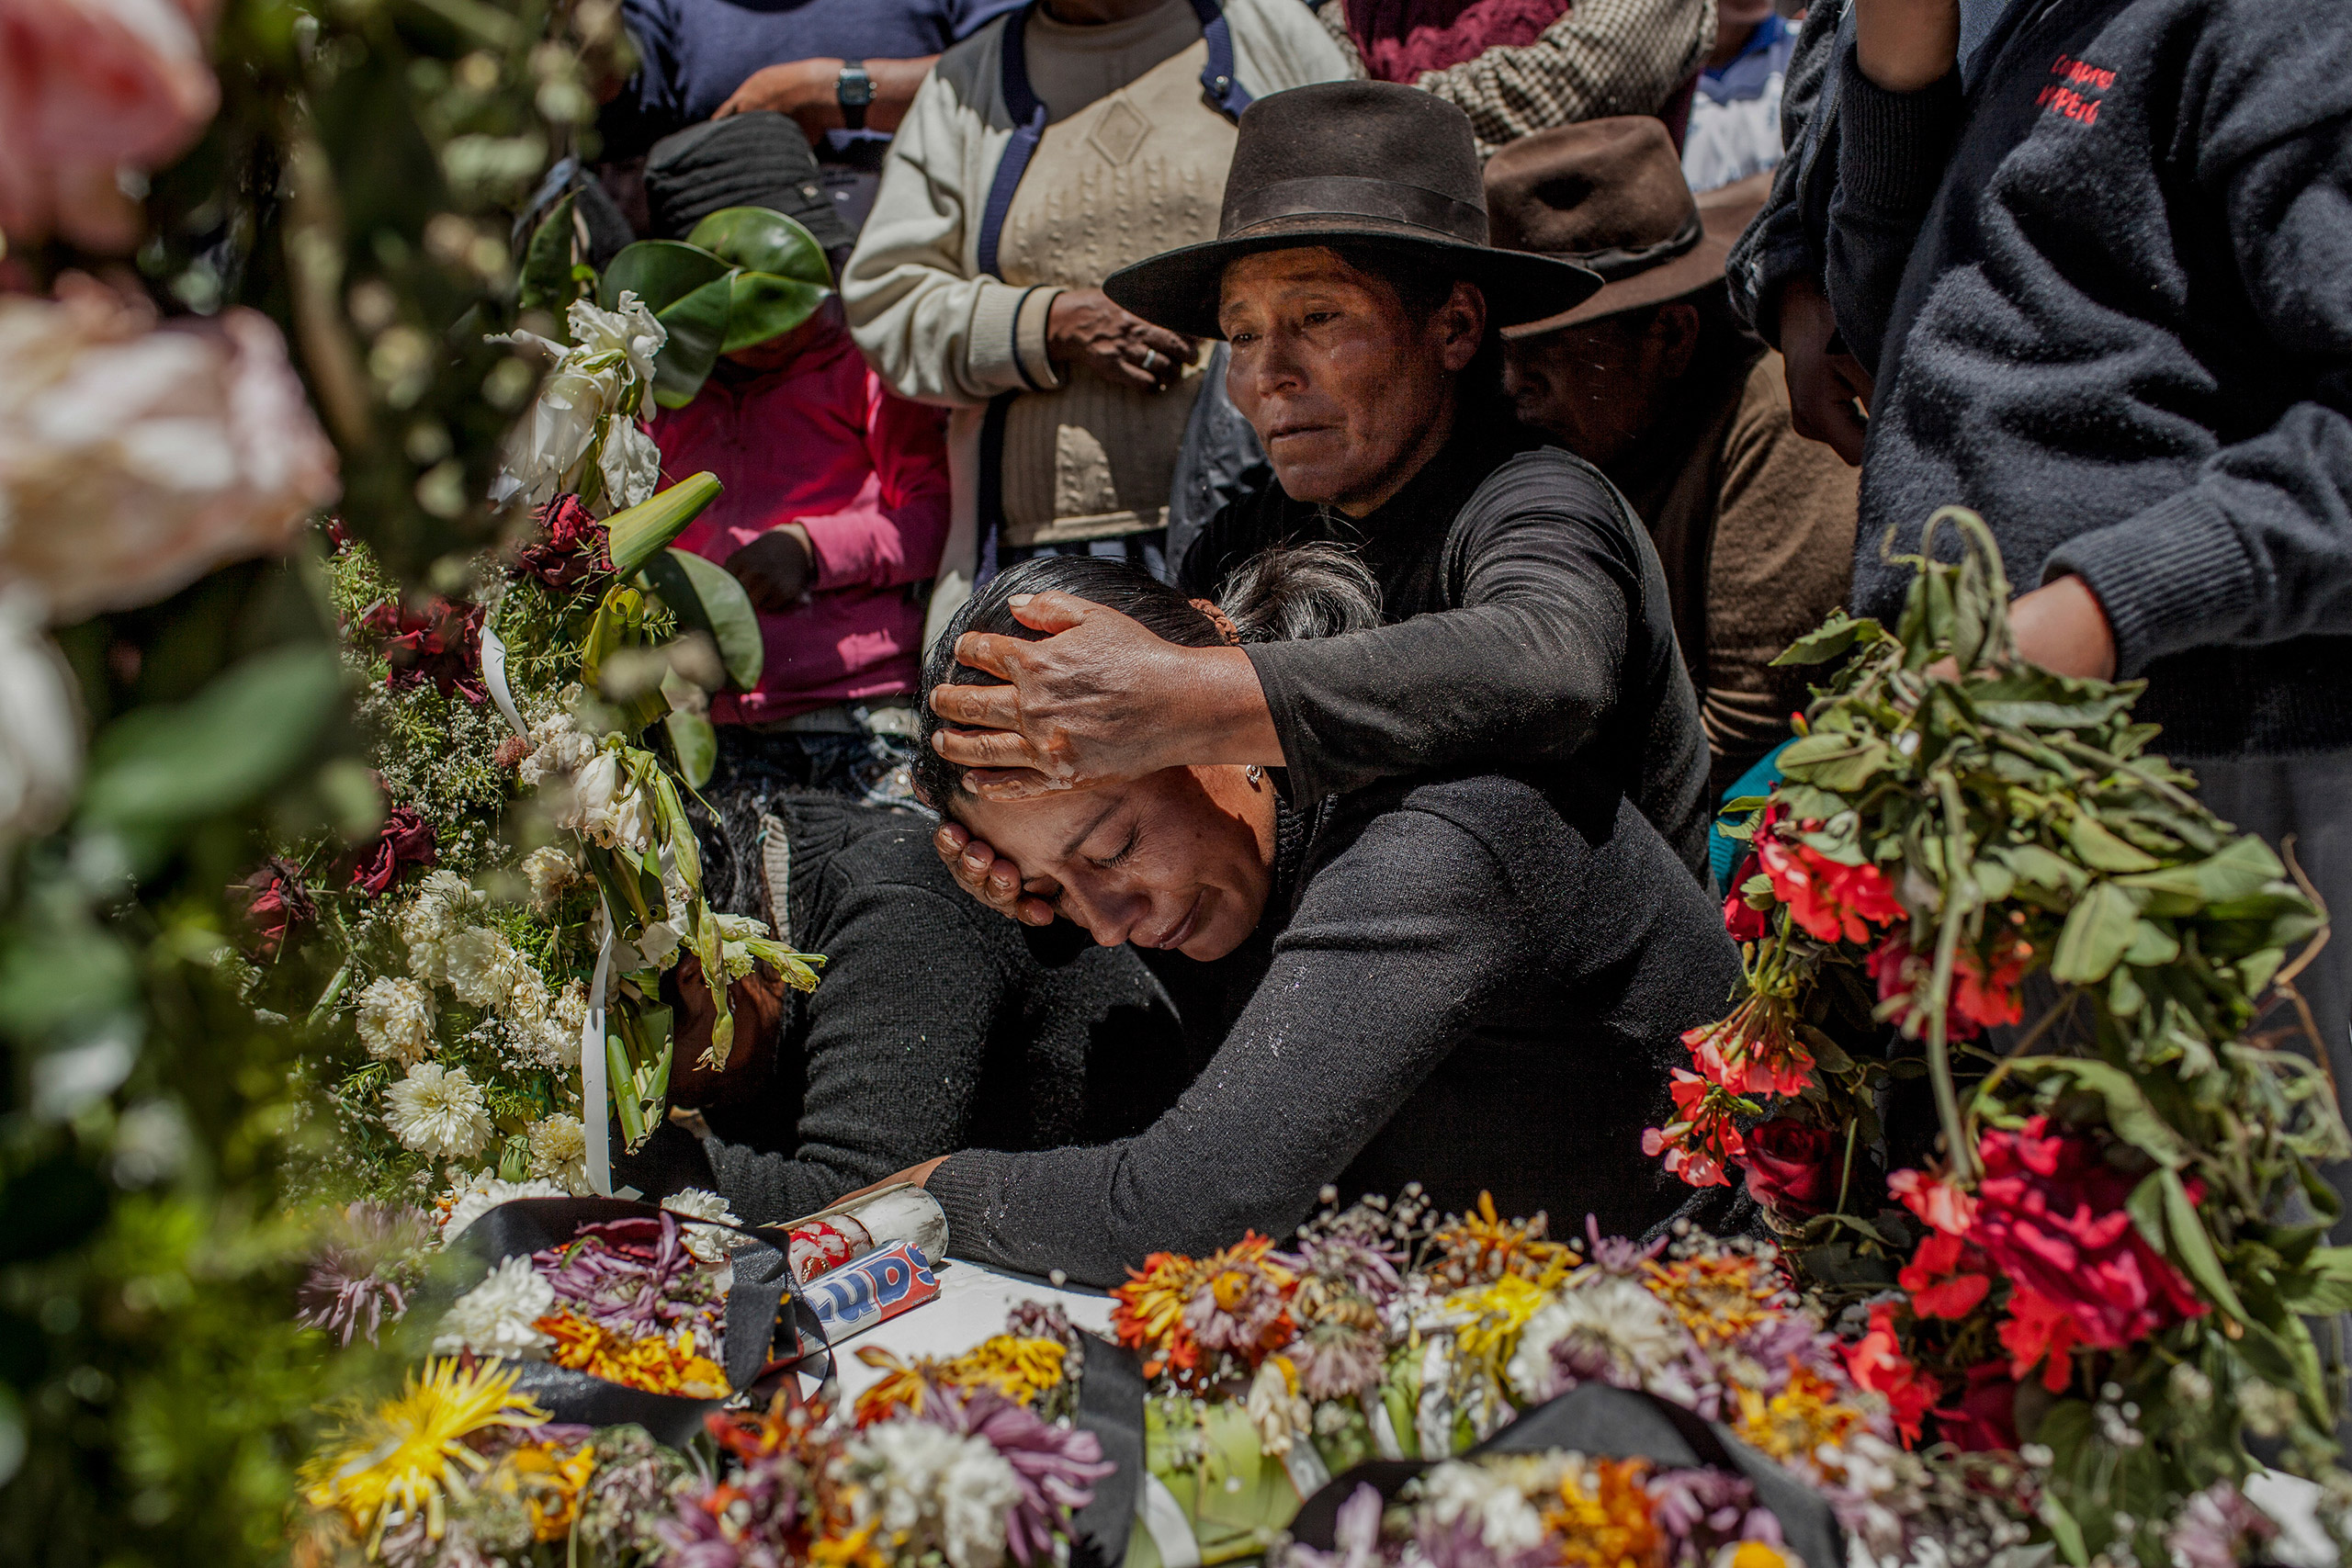 Twenty-five years after the massacre of Soras, the remains were exhumed to be identified and processed by the judicial system; after which they were delivered to their families. In Peru there are still 16,000 missing people related to terrorist violence during the 1980-2000.